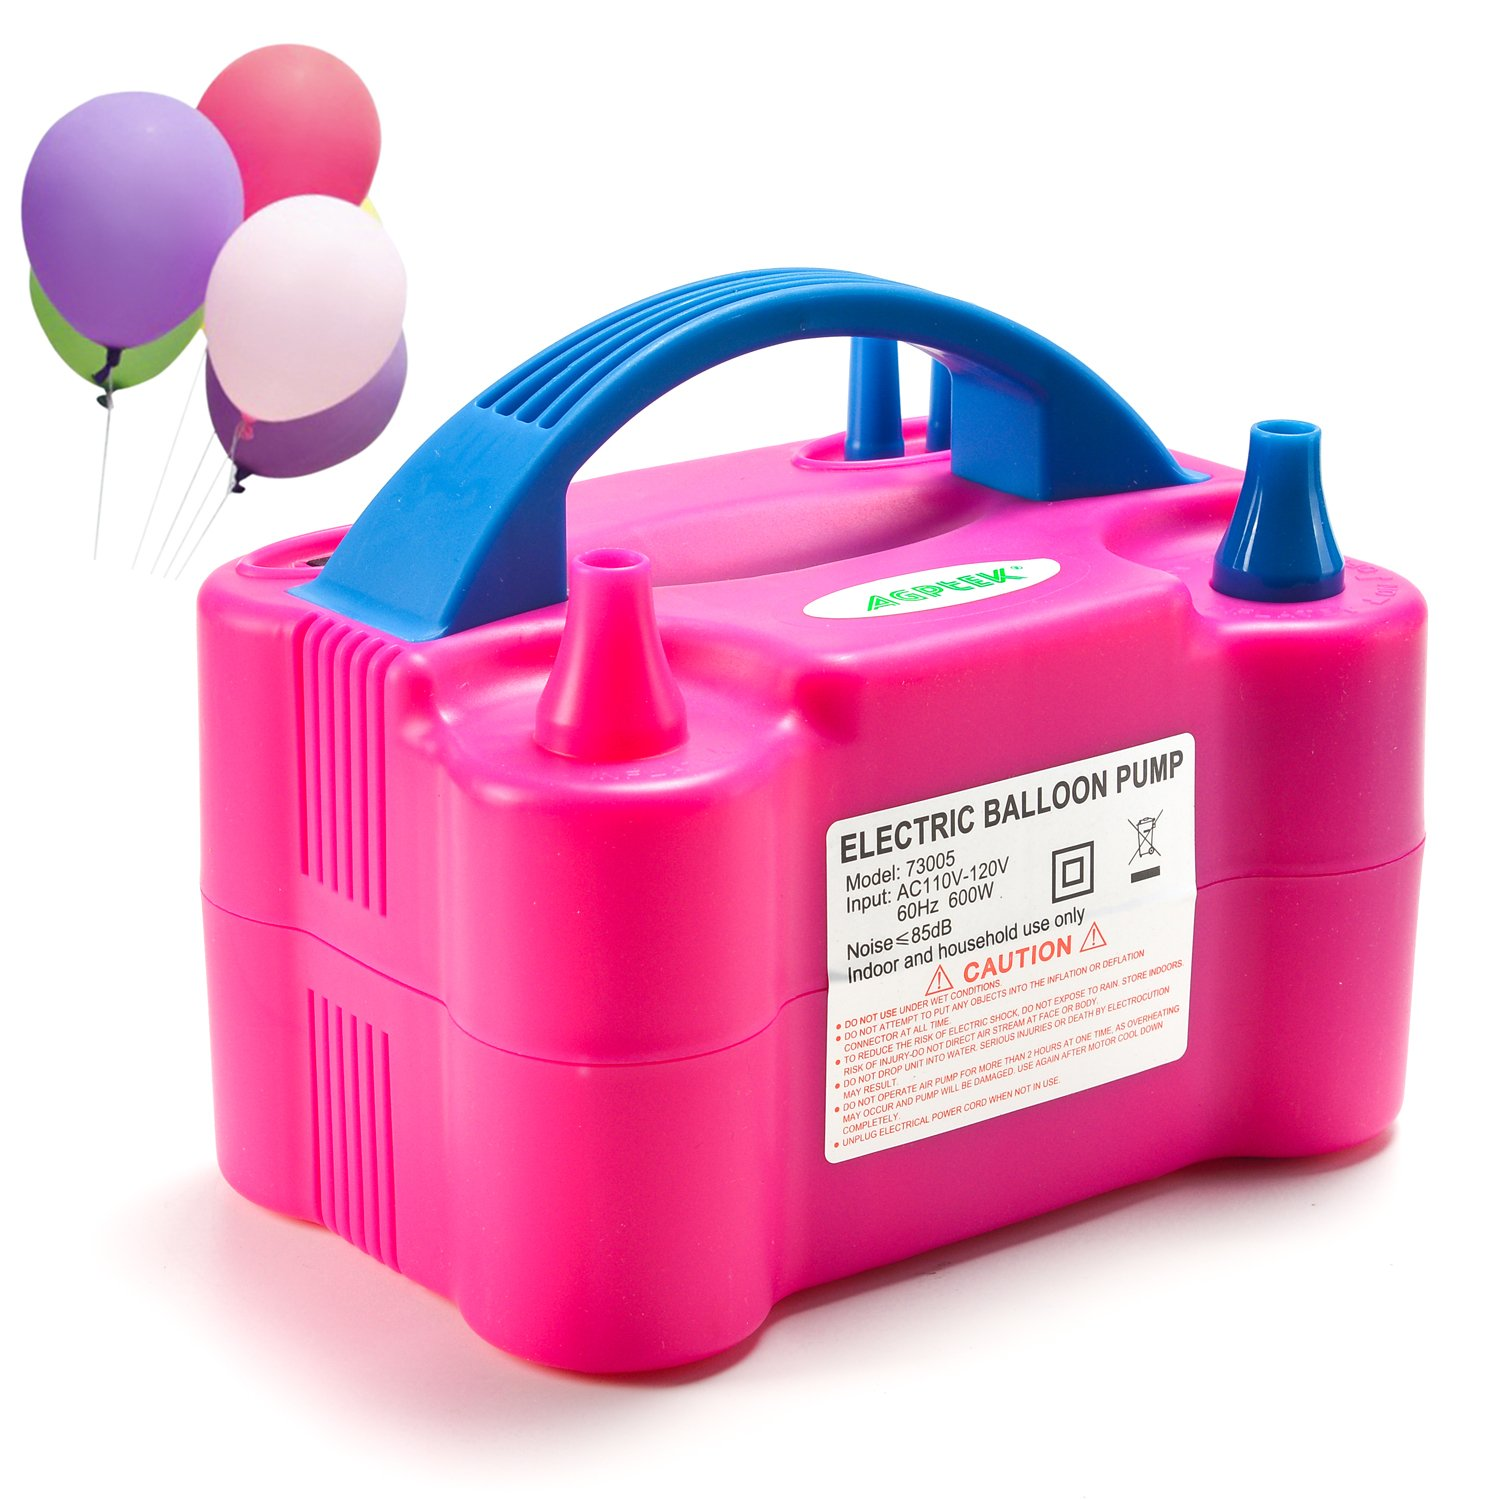 AGPTEK Electric Air Balloon Pump, 110V 600W Rose Red Portable Dual Nozzle Inflator/Blower for Party Decoration MamBate